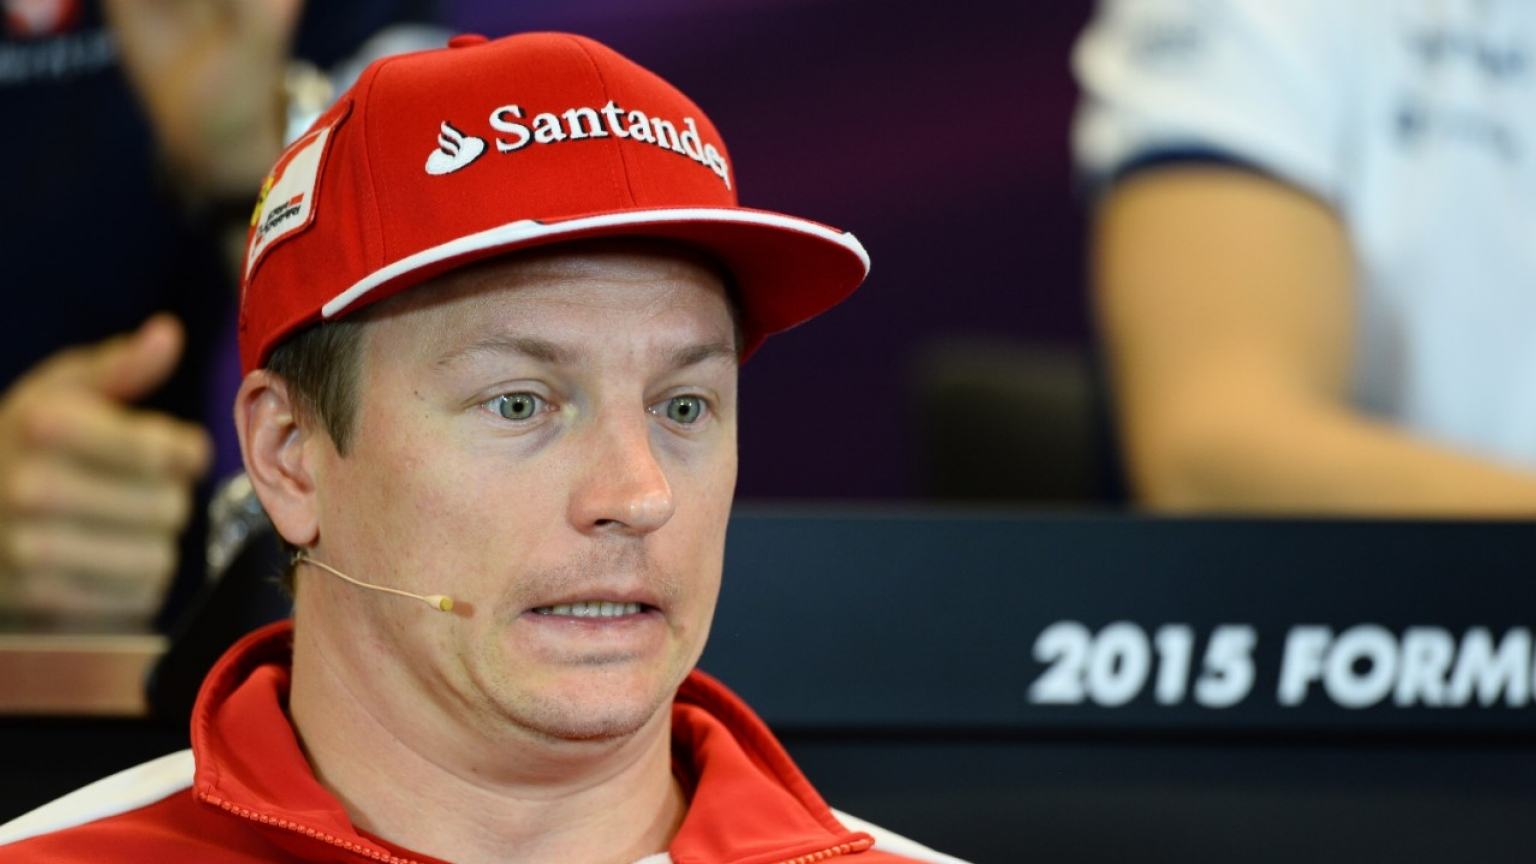 Raikkonen speaks what he feels and vice versa (Image: Formula One)